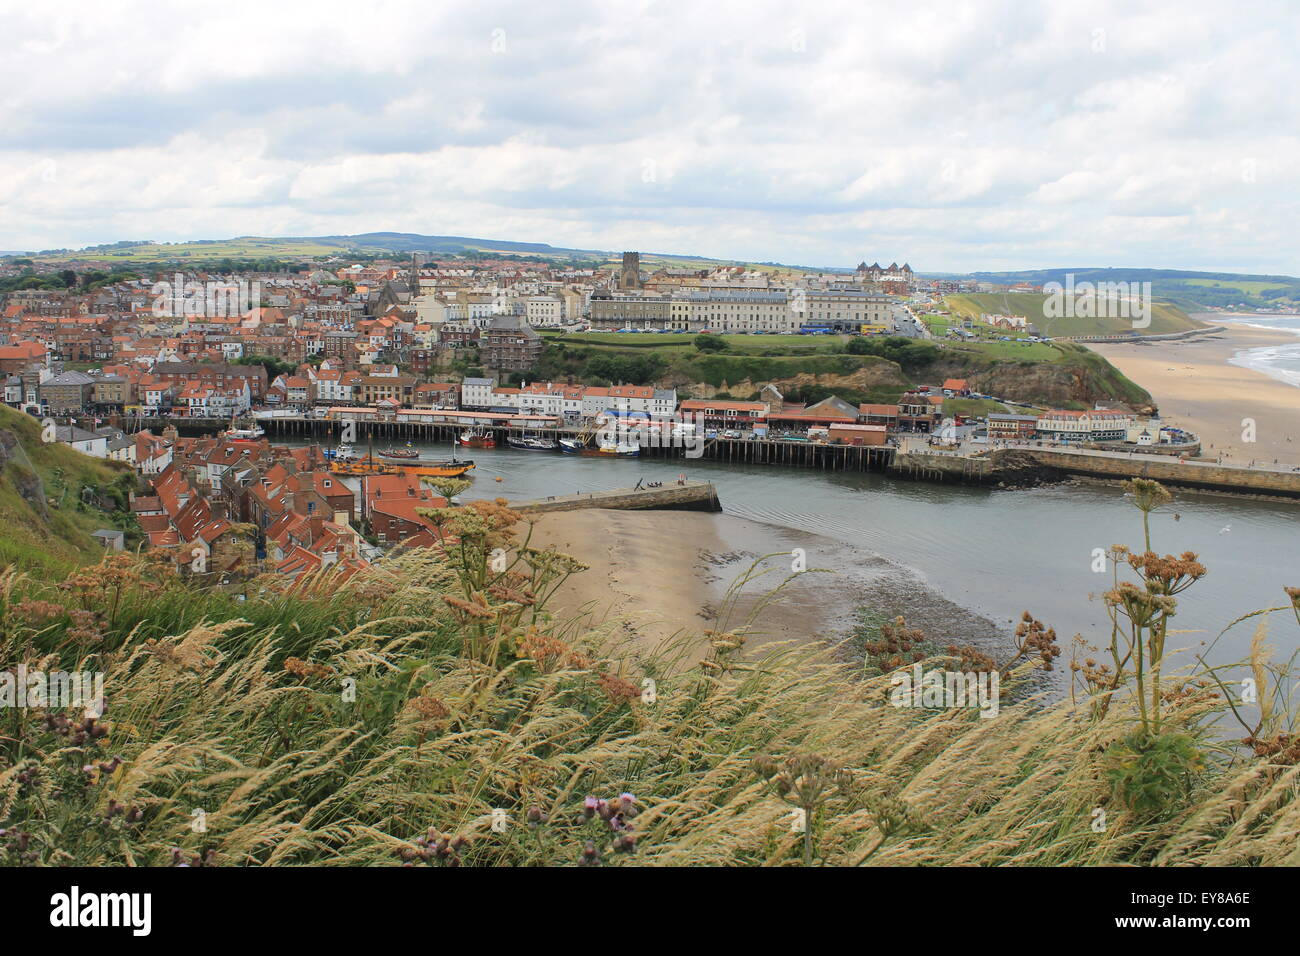 Whitby: looking north-west over the town from the Church of Saint Mary across the River Esk to the North York Moors - Stock Image